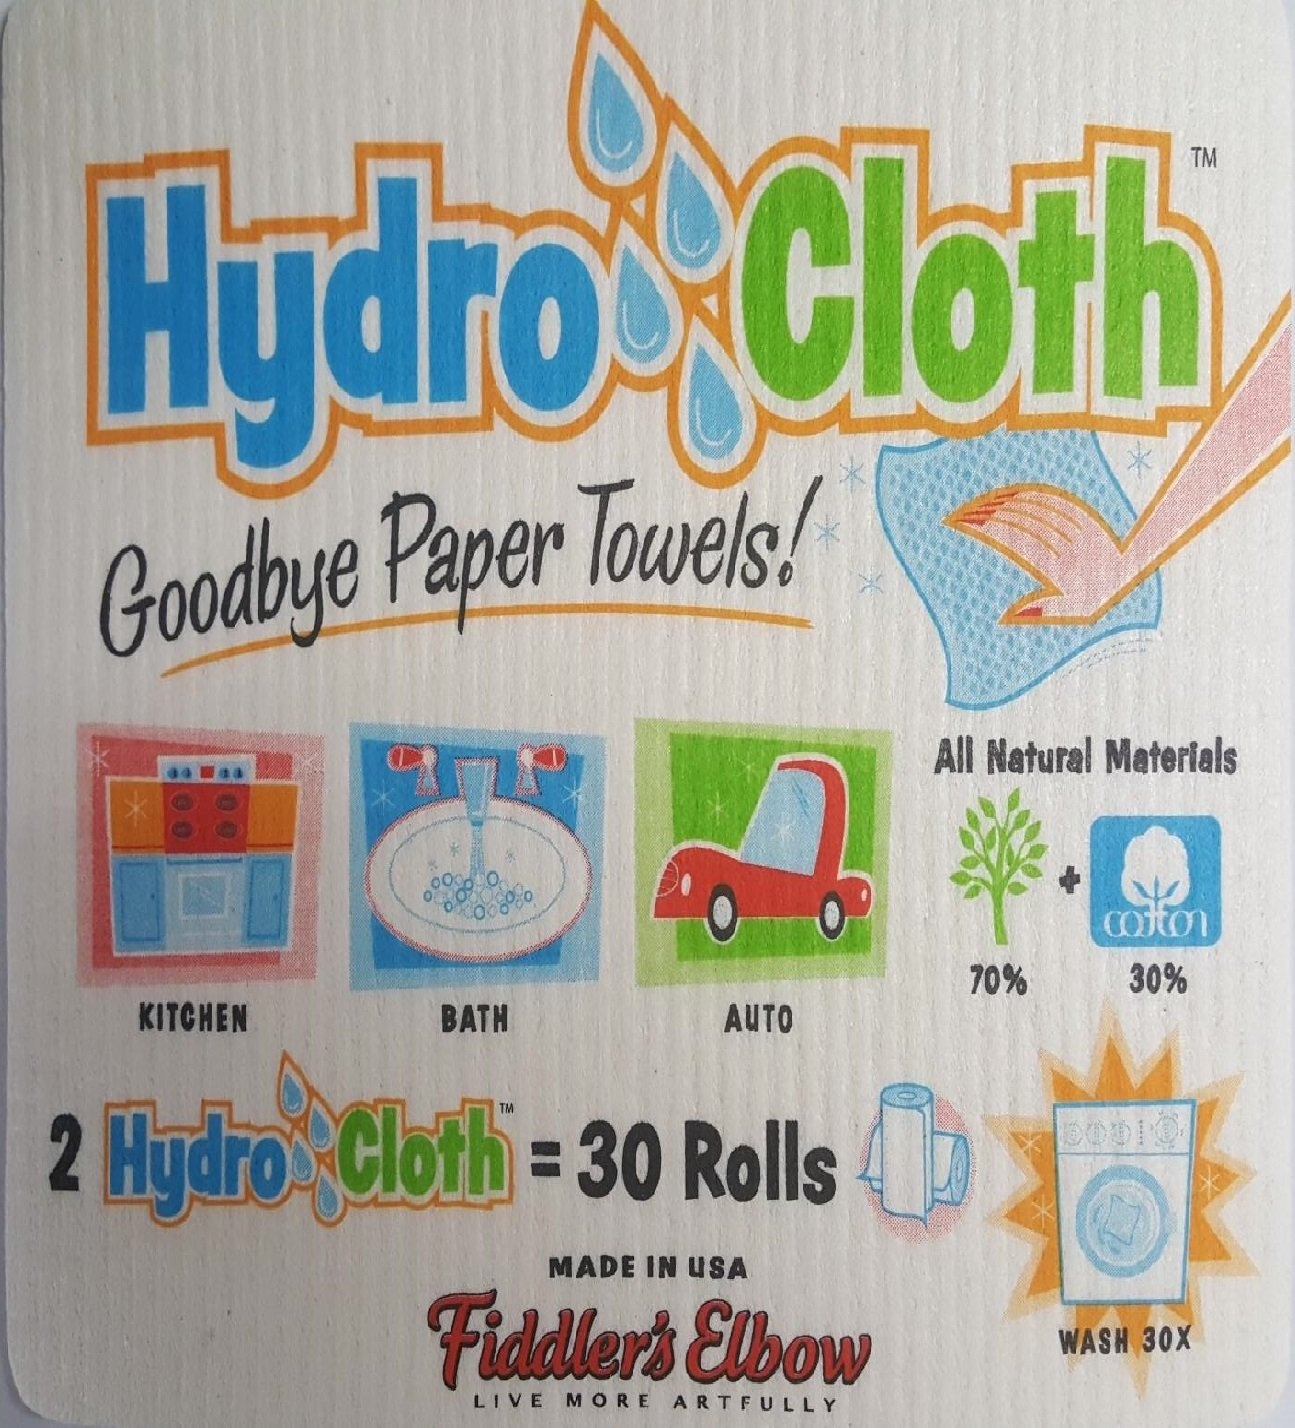 Eco-friendly Sponge Cloths Replaces 30 Rolls of Paper Towels New York Hydro Cloths Fiddlers Elbow Excelsior Reusable Swedish Dish Cloths Set of 2 Printed Sponge Cloths